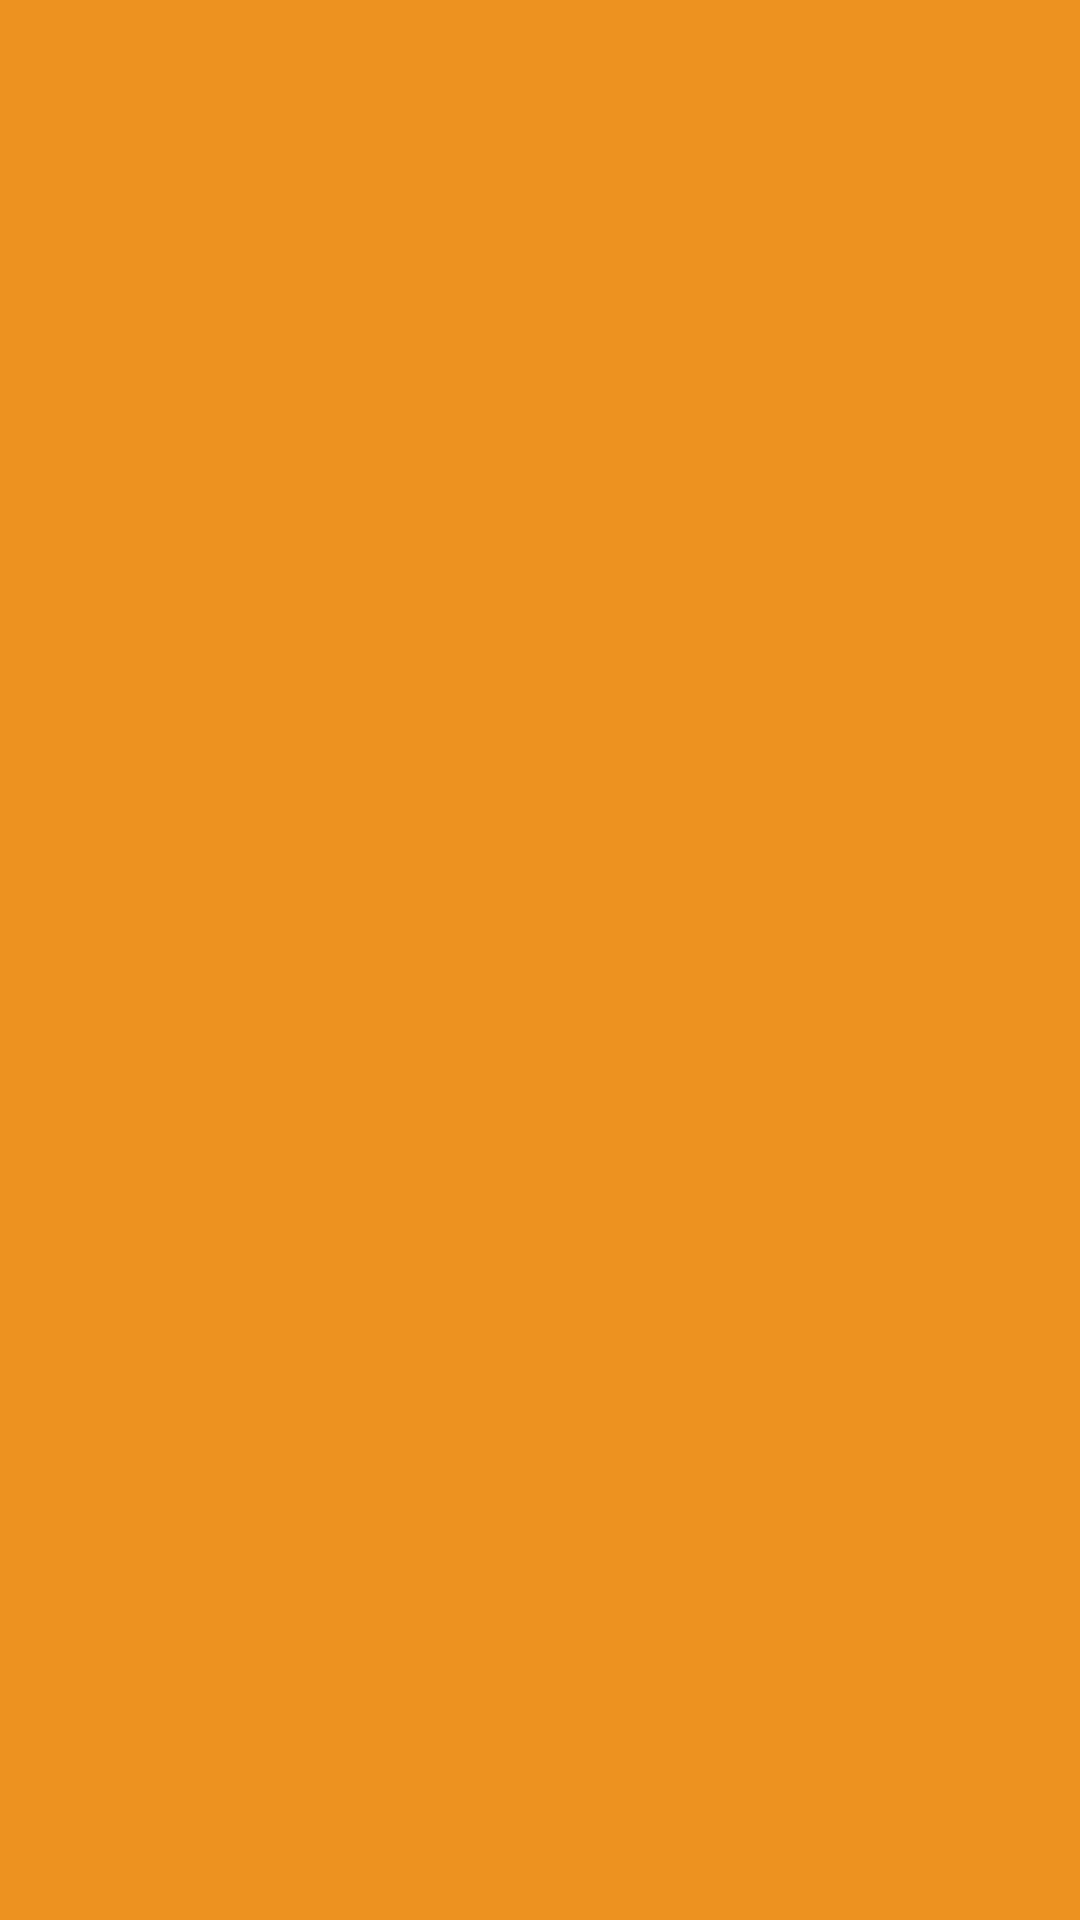 1080x1920 Carrot Orange Solid Color Background